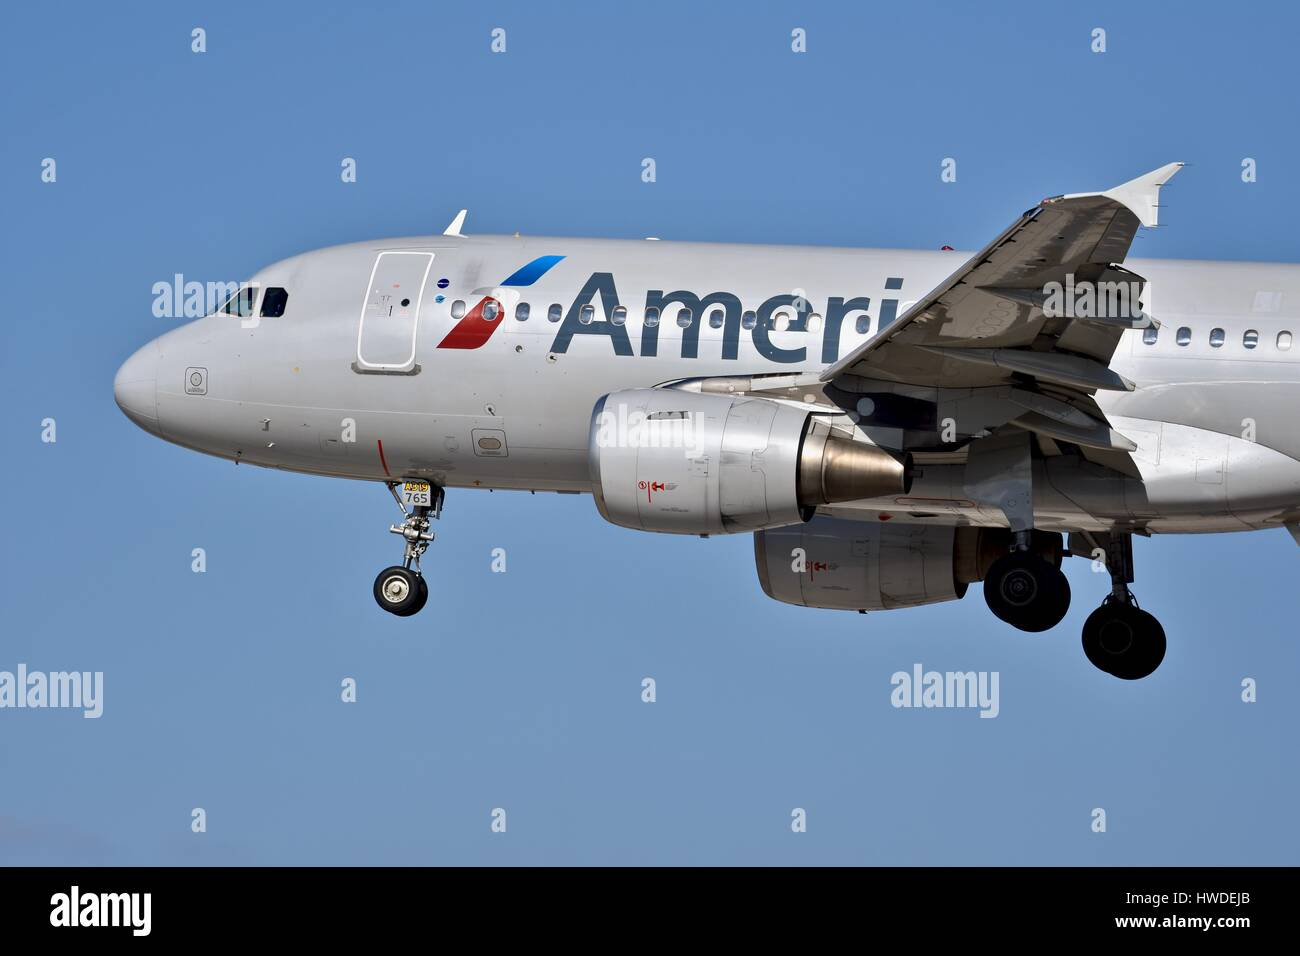 American Airlines Logo Stock Photos Amp American Airlines